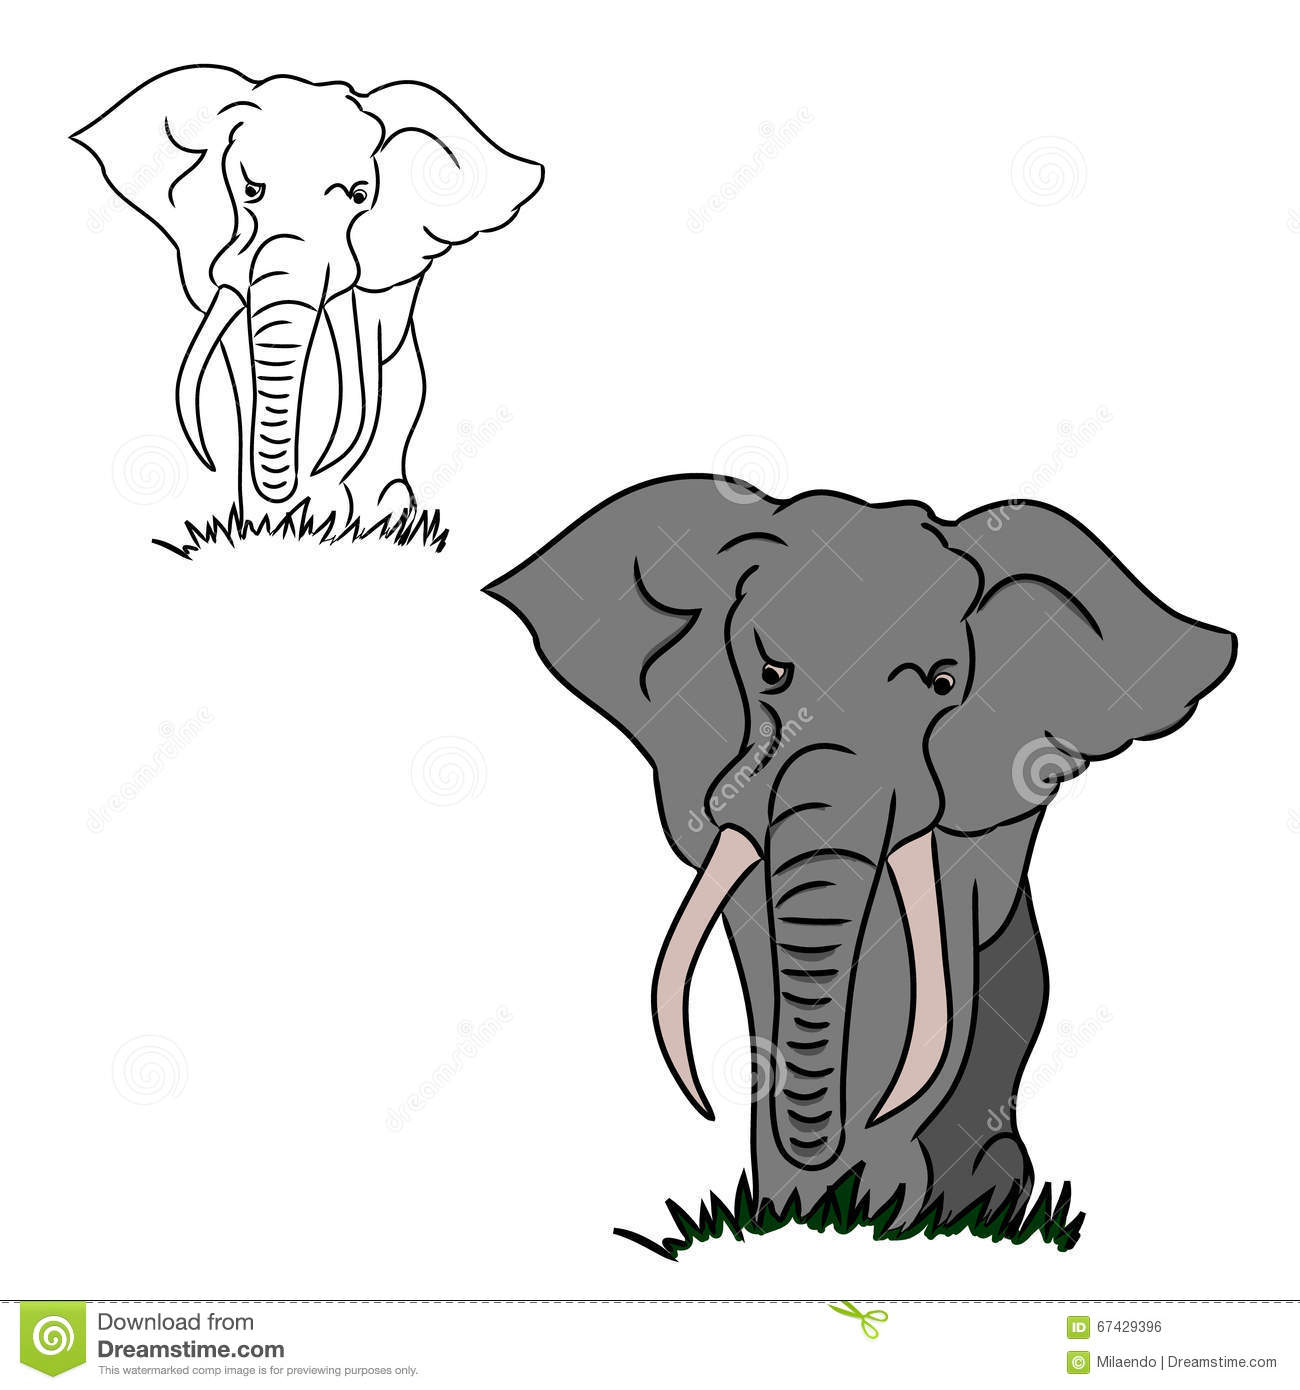 Grey elephant silhouettes stock vector. Illustration of abstract ...